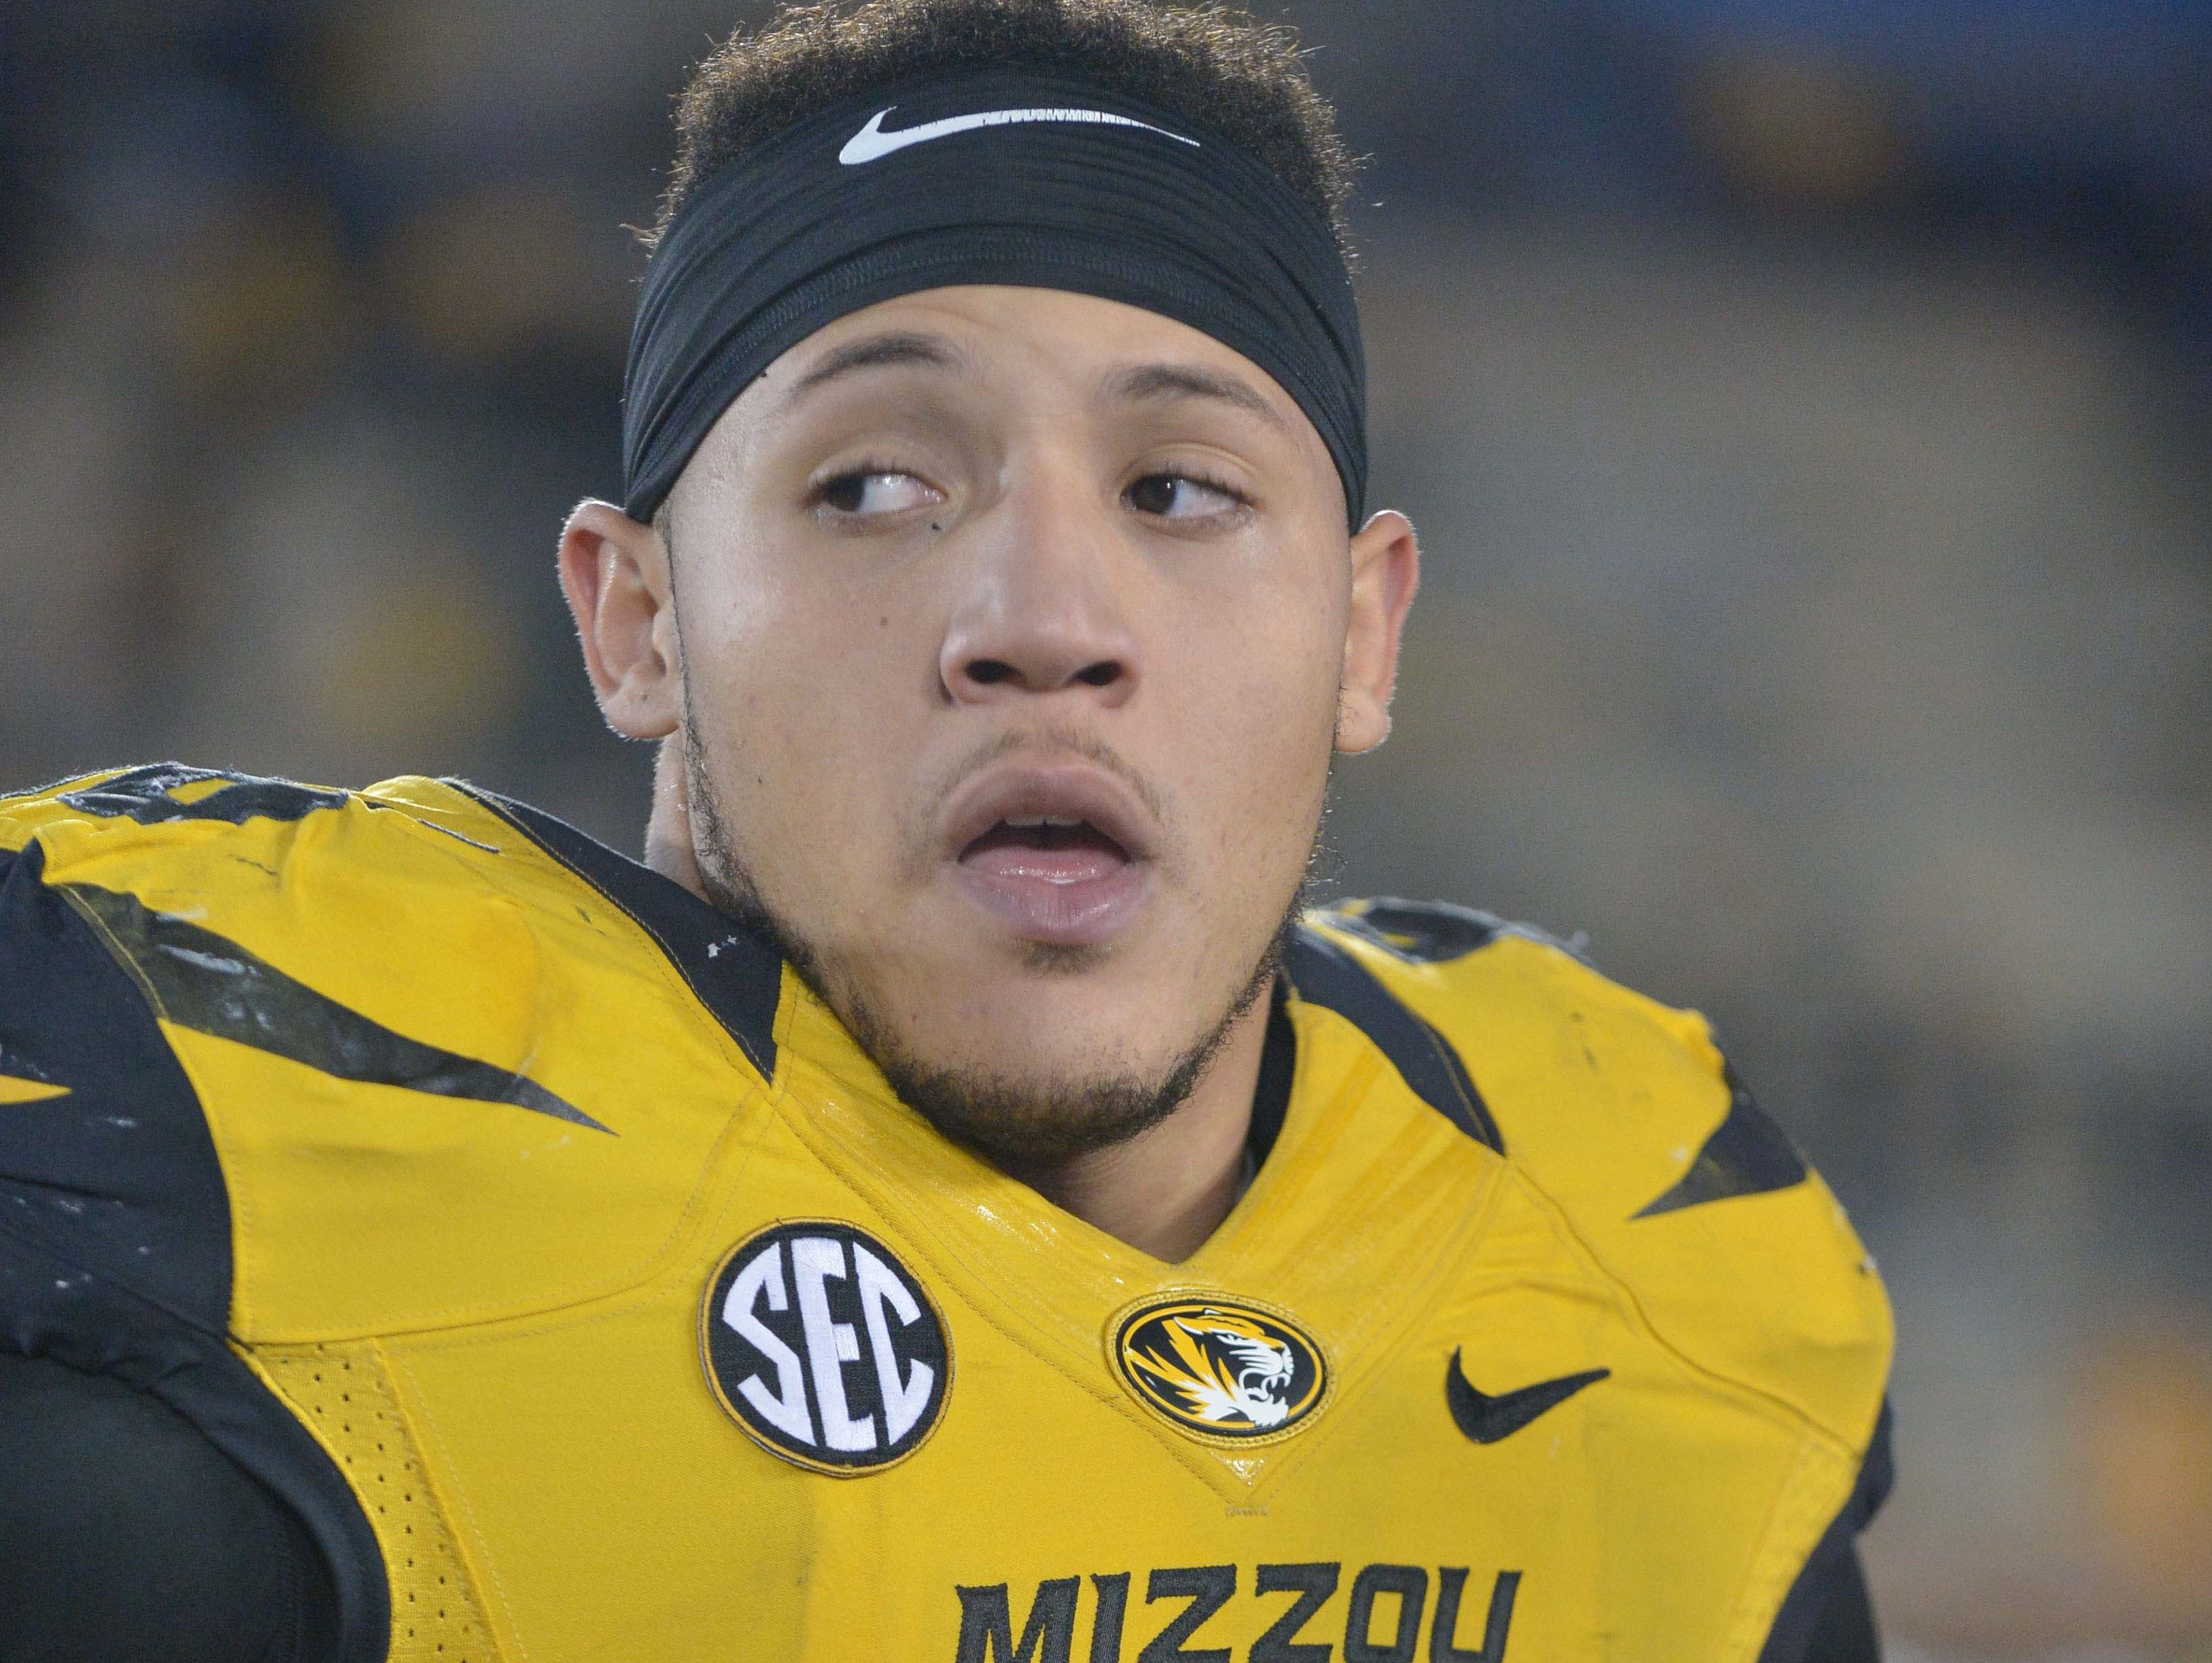 Missouri Tigers defensive lineman Shane Ray was named SEC Defensive Player of the Year on Monday.